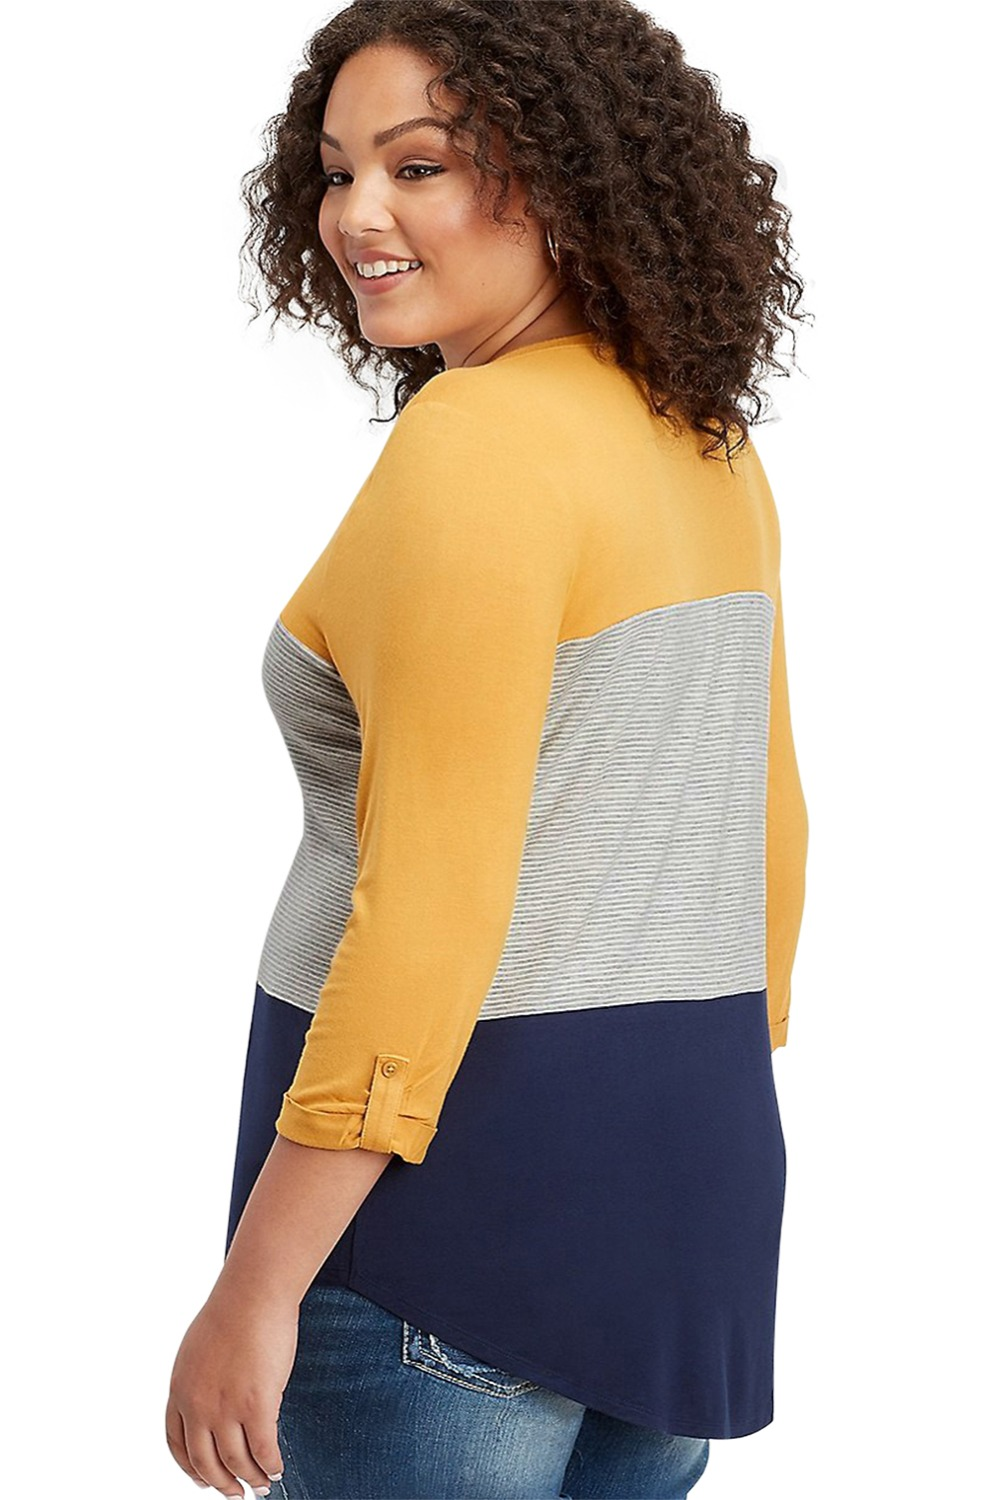 Yellow-Navy-Striped-Plus-Size-Top-LC251513-22-2